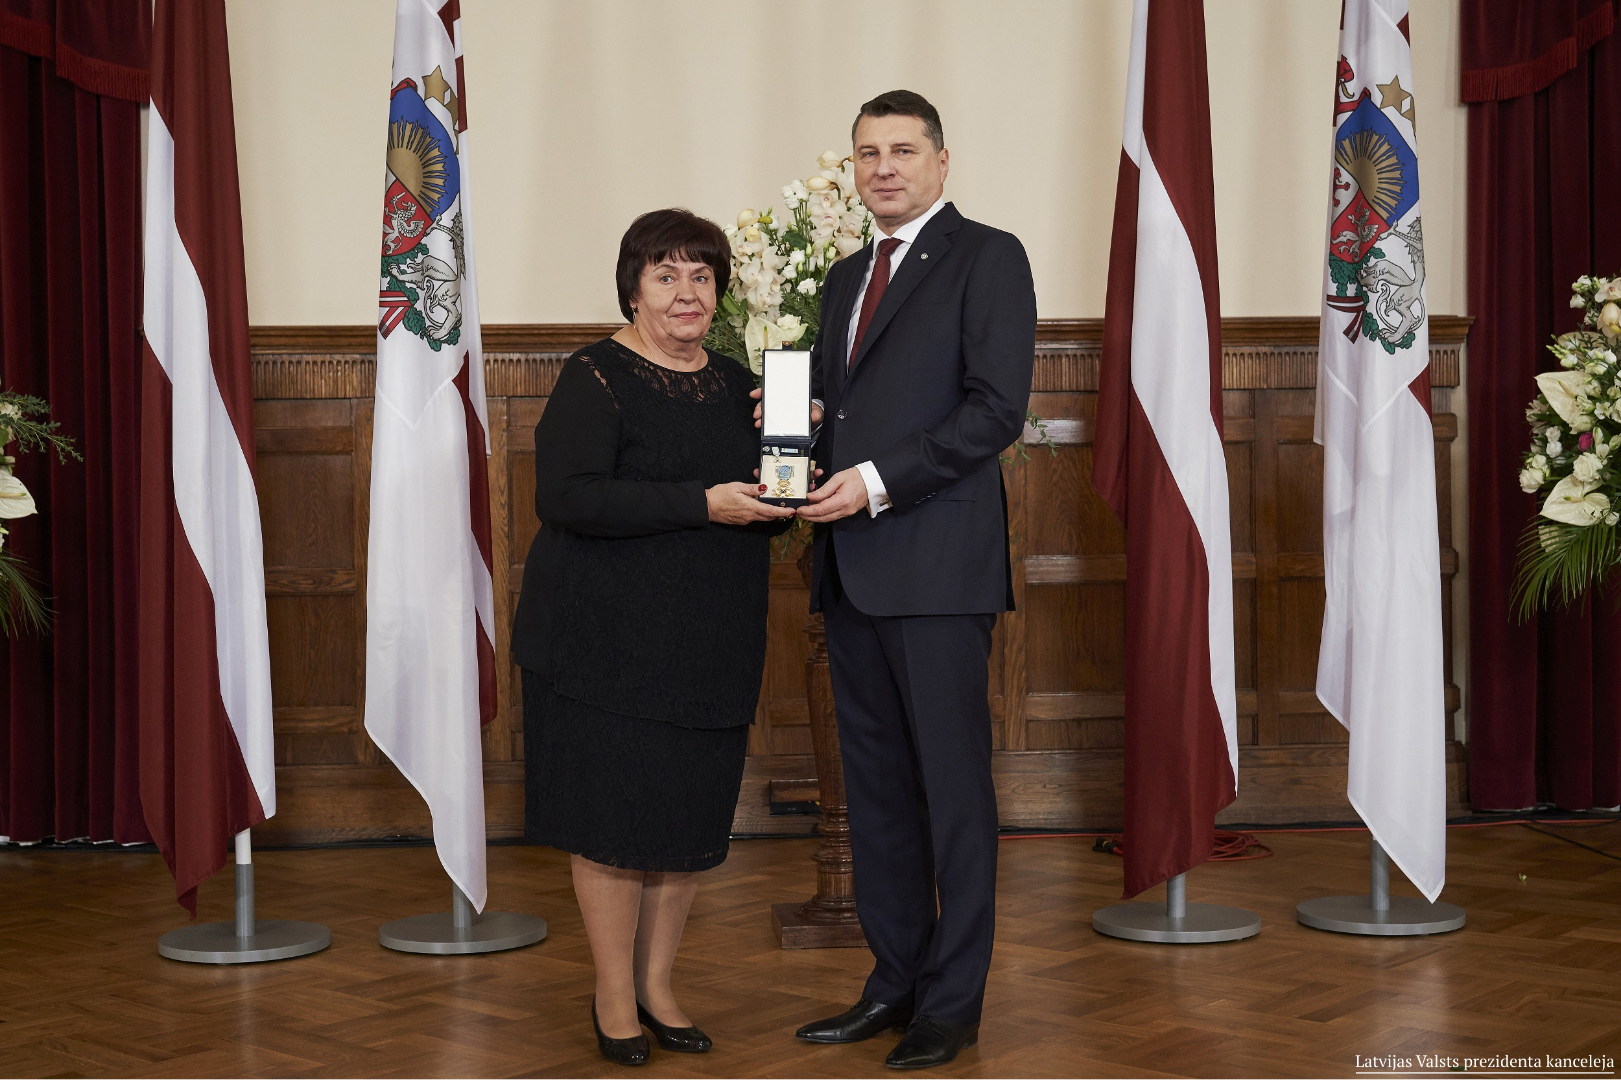 17.11.2018. Edite Vernusa, judge of the Department of Civil Cases, was awarded the highest state award – the Order of the Three Stars – for meritorious service to Latvia. The Order of Chapters has awarded the judge with the Order of the 4th class. On the eve of the centenary of Latvia, the award was presented by the President of Latvia Raimonds Vejonis.